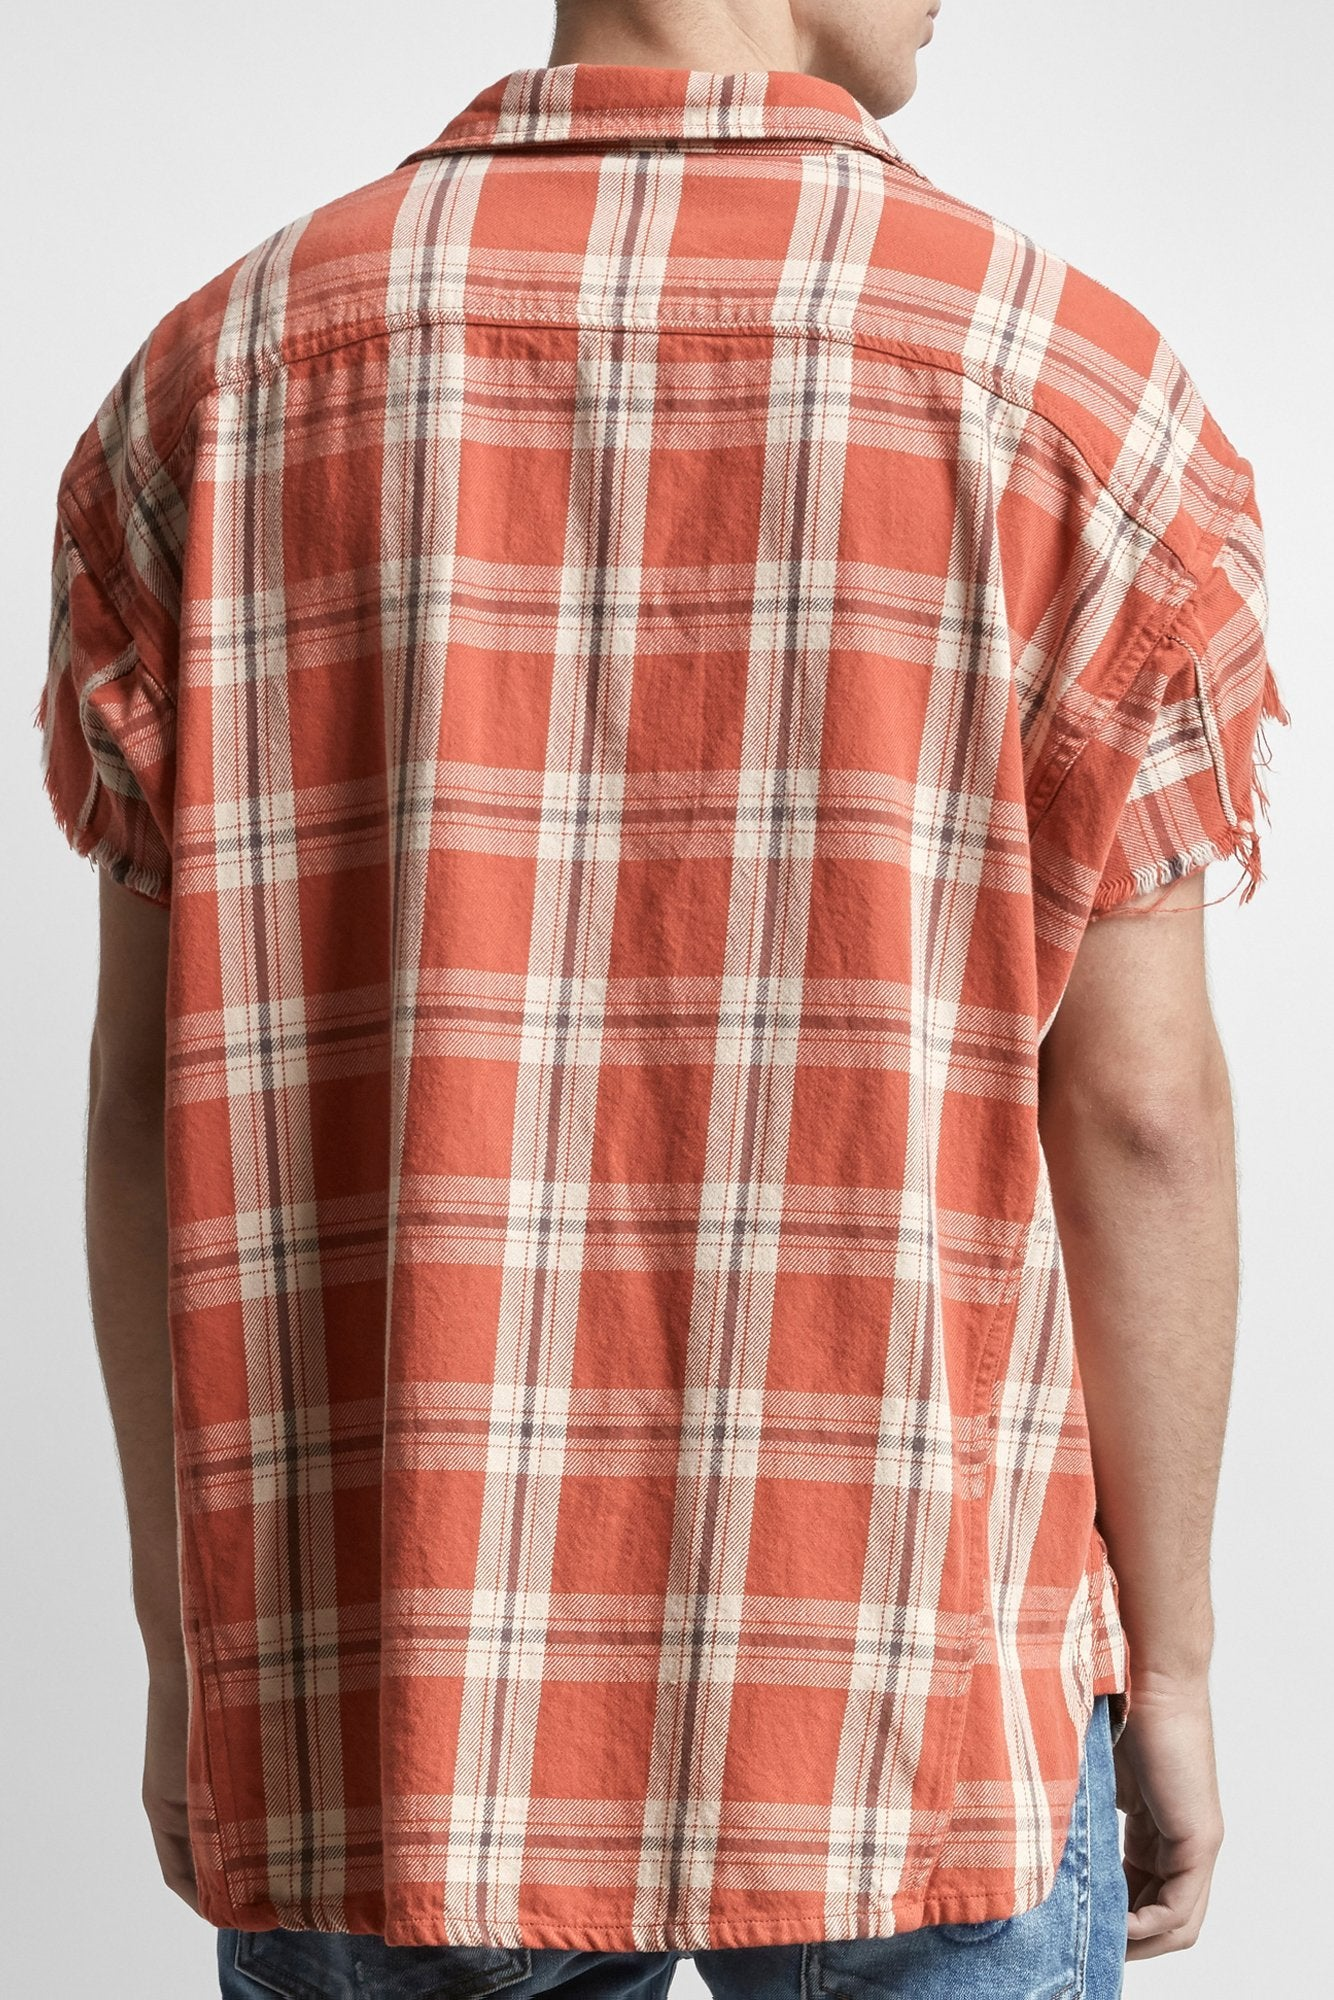 Oversized Cut-Off Shirt - Red Plaid